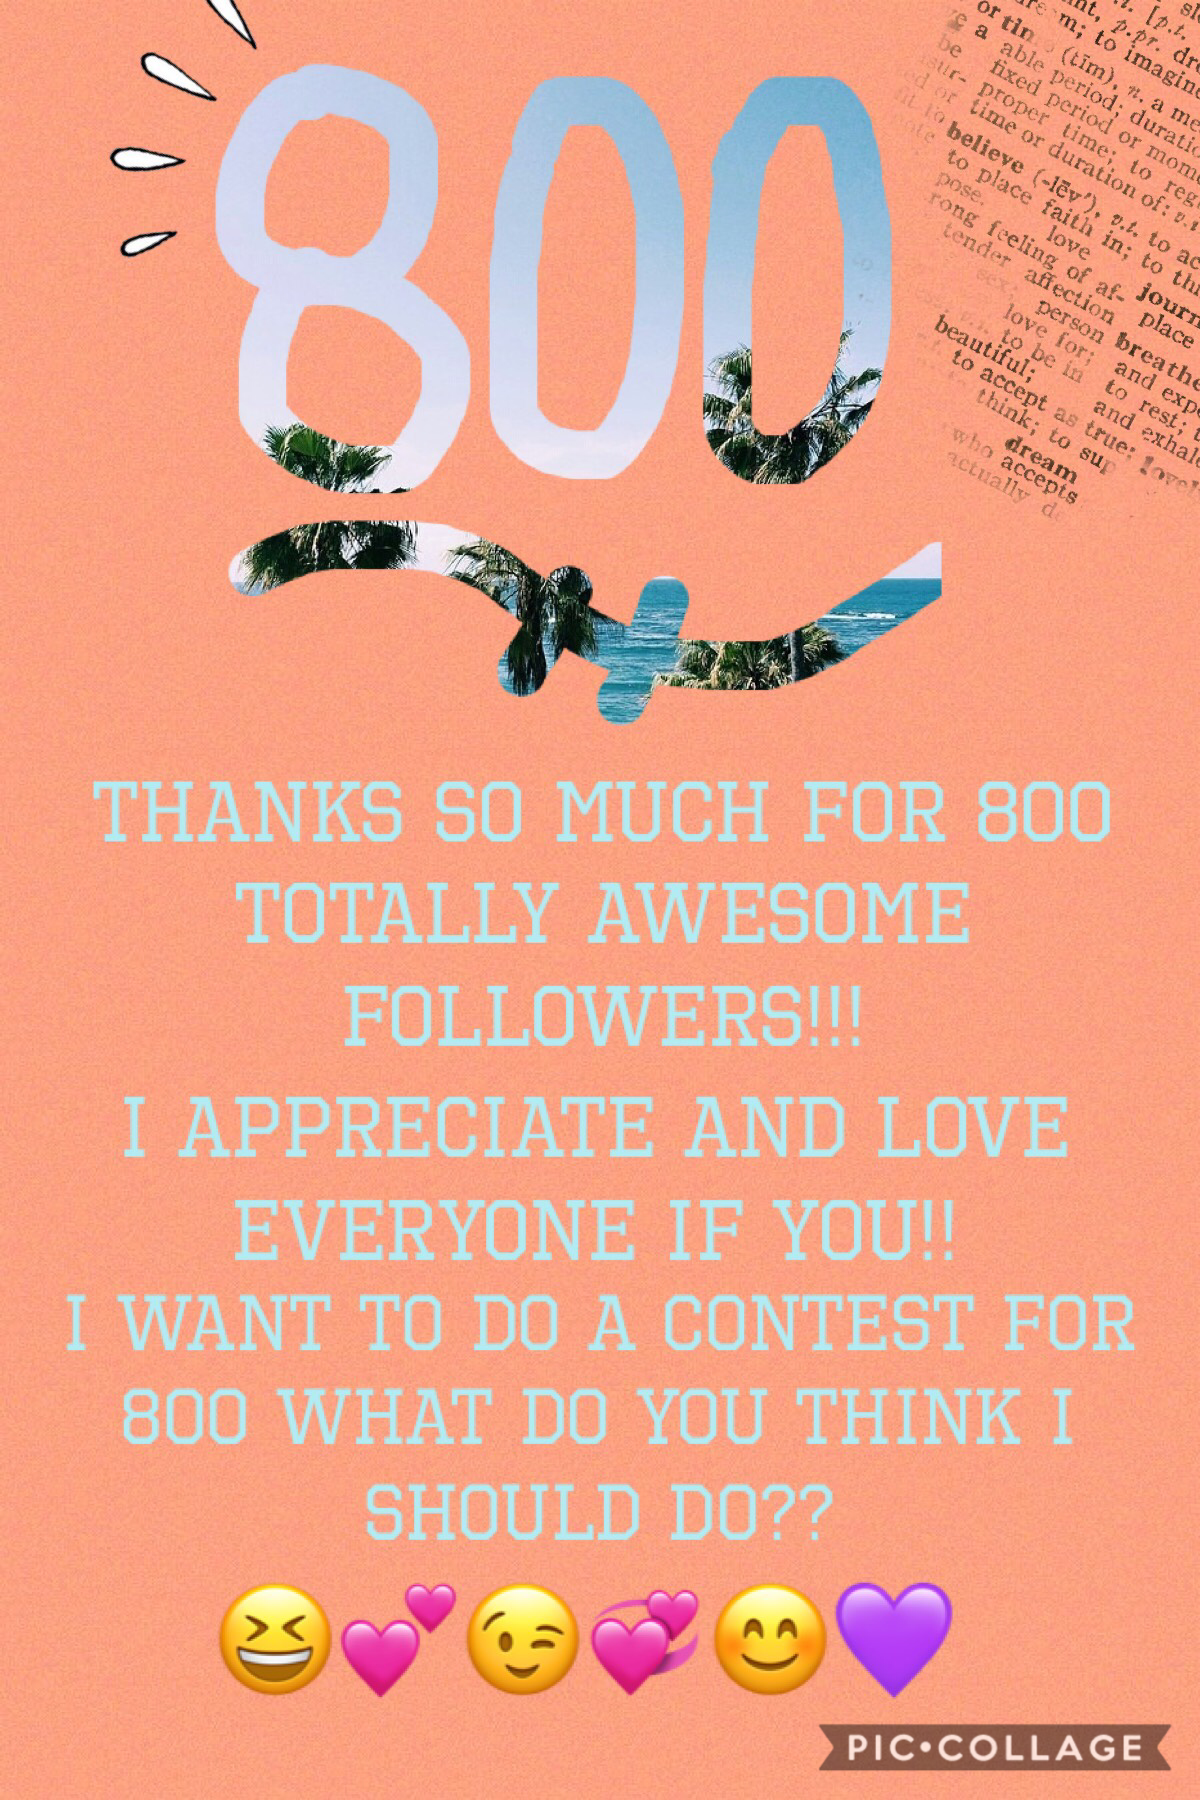 800!!!! Comment what you think I should do.